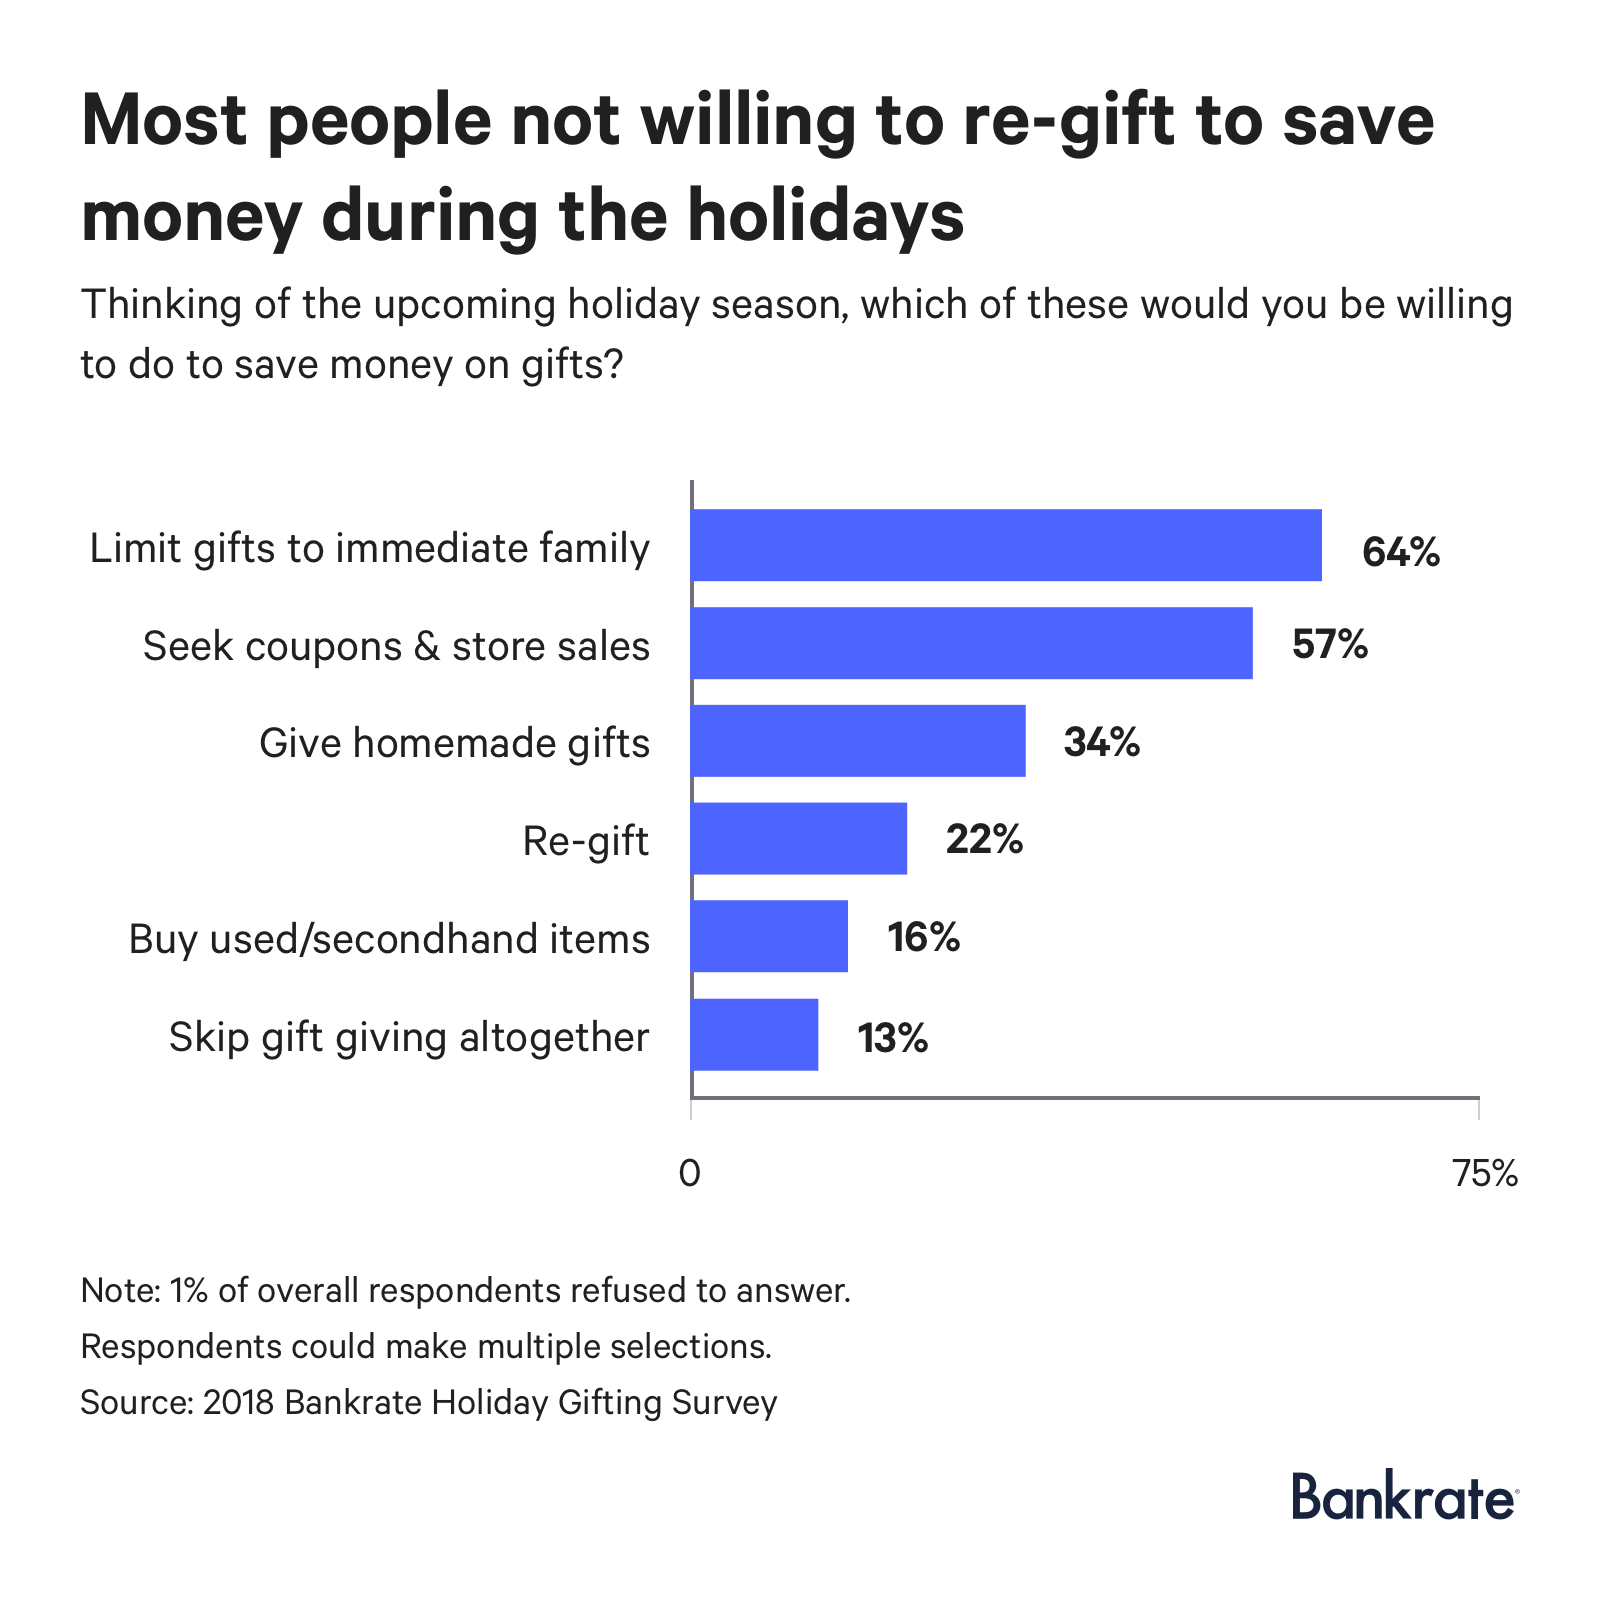 Only 22% will re-gift to save money on gifting